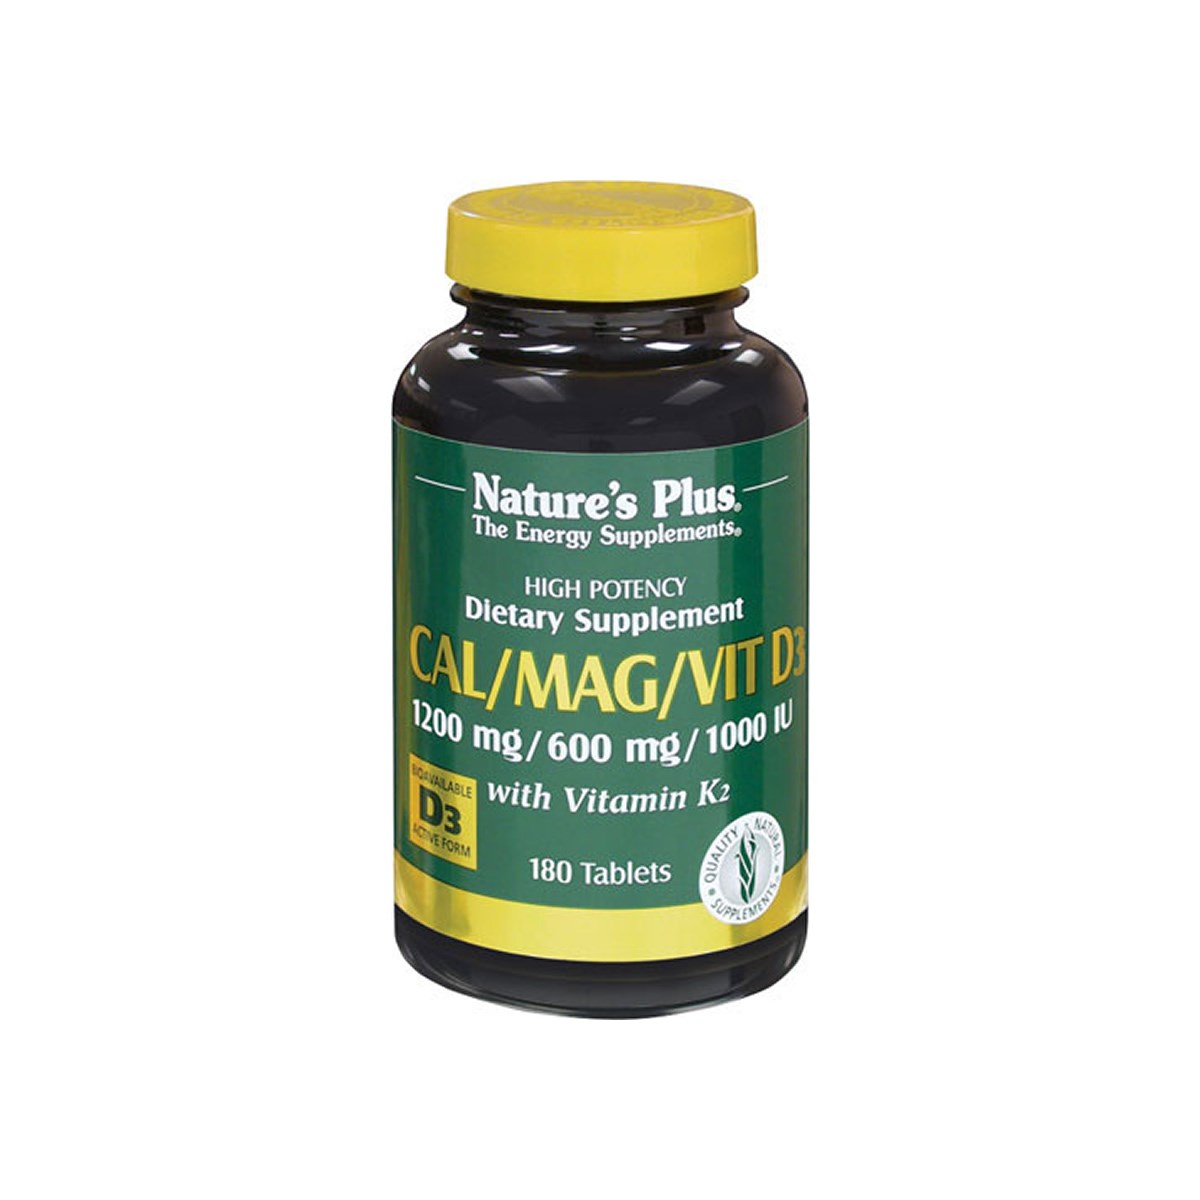 Natures Plus Cal/Mag/Vit D3 with Vitamin K2 Tablets